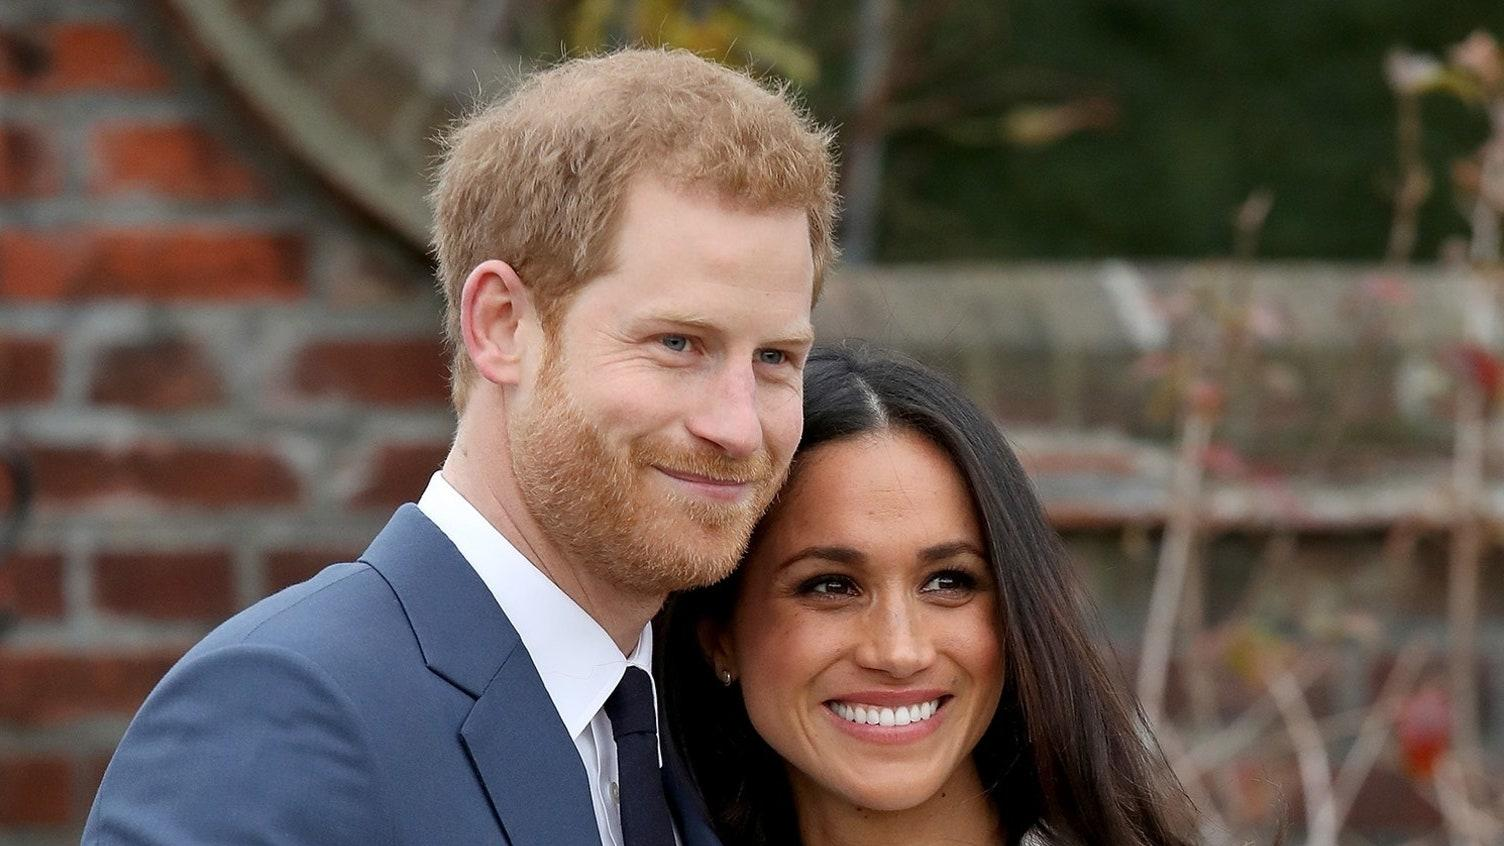 Prince Harry And Meghan Markle Announce Spotify Podcasting Deal - Details!